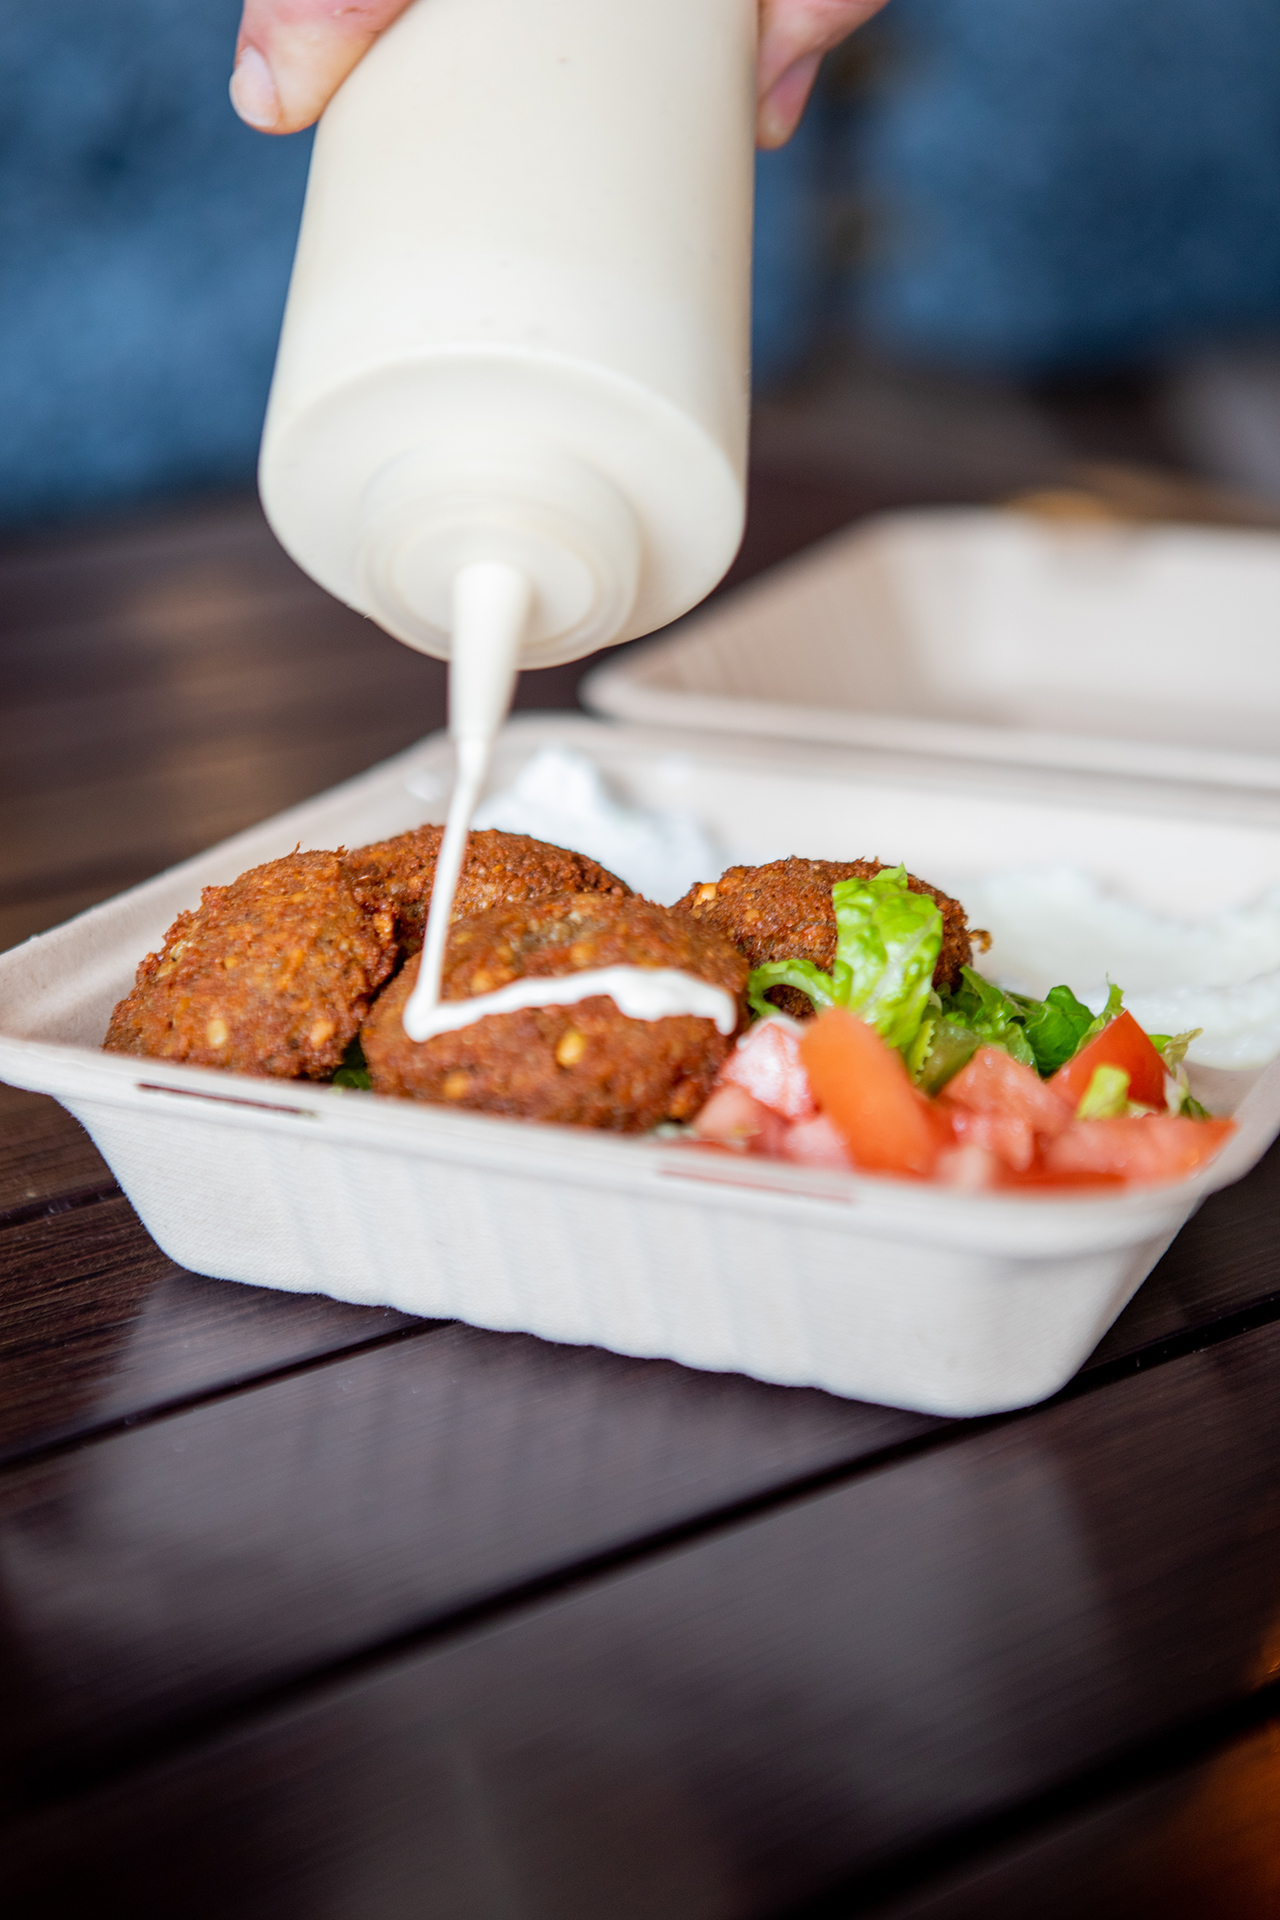 Inside the Hummus Labs restaurant, on top of a black metalic table a Falafel plate is being topped with Tahini sauce. The plate is accompanied with a salad, spicy labneh and tzatziki sides.